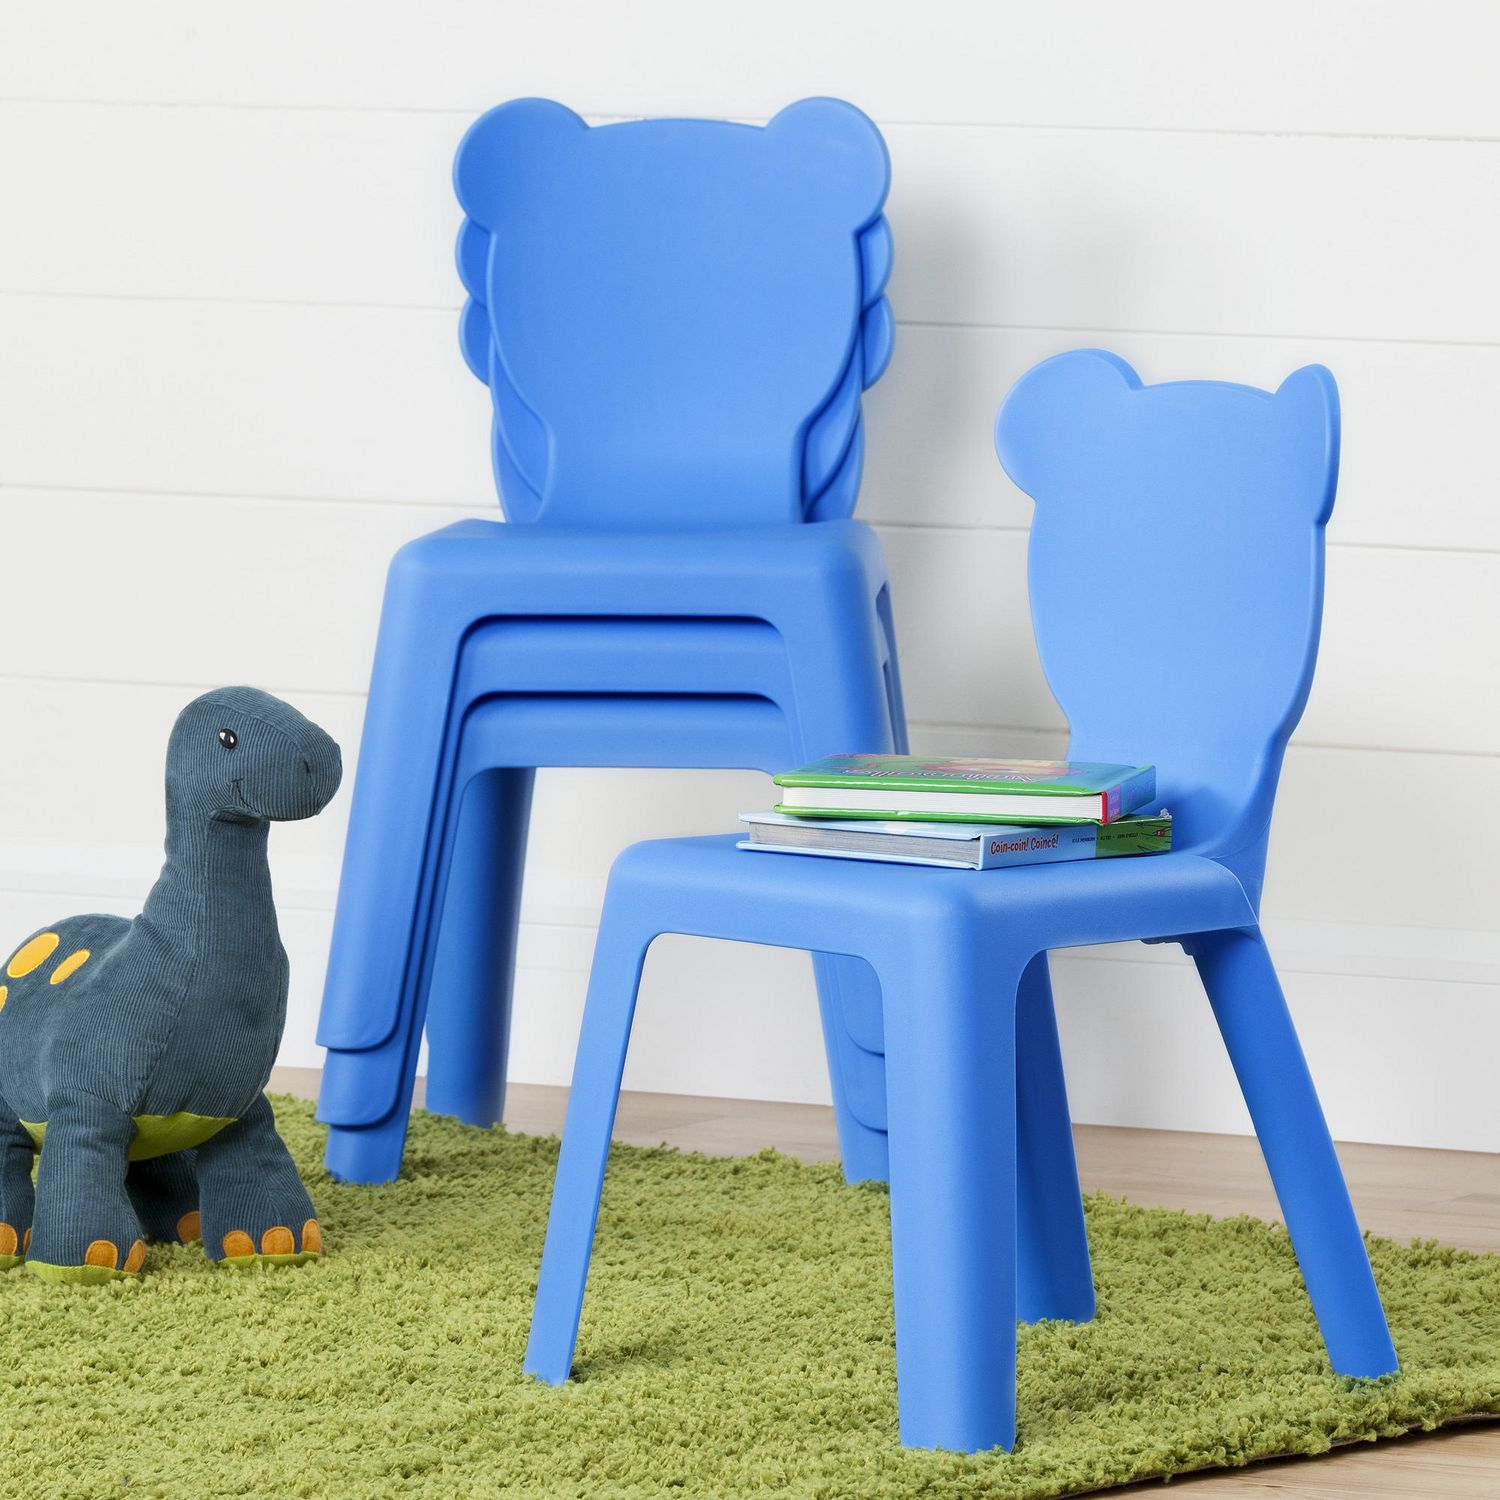 Plastic Kids Chairs South Shore Crea Kids Plastic Stacking Chairs 4 Pack